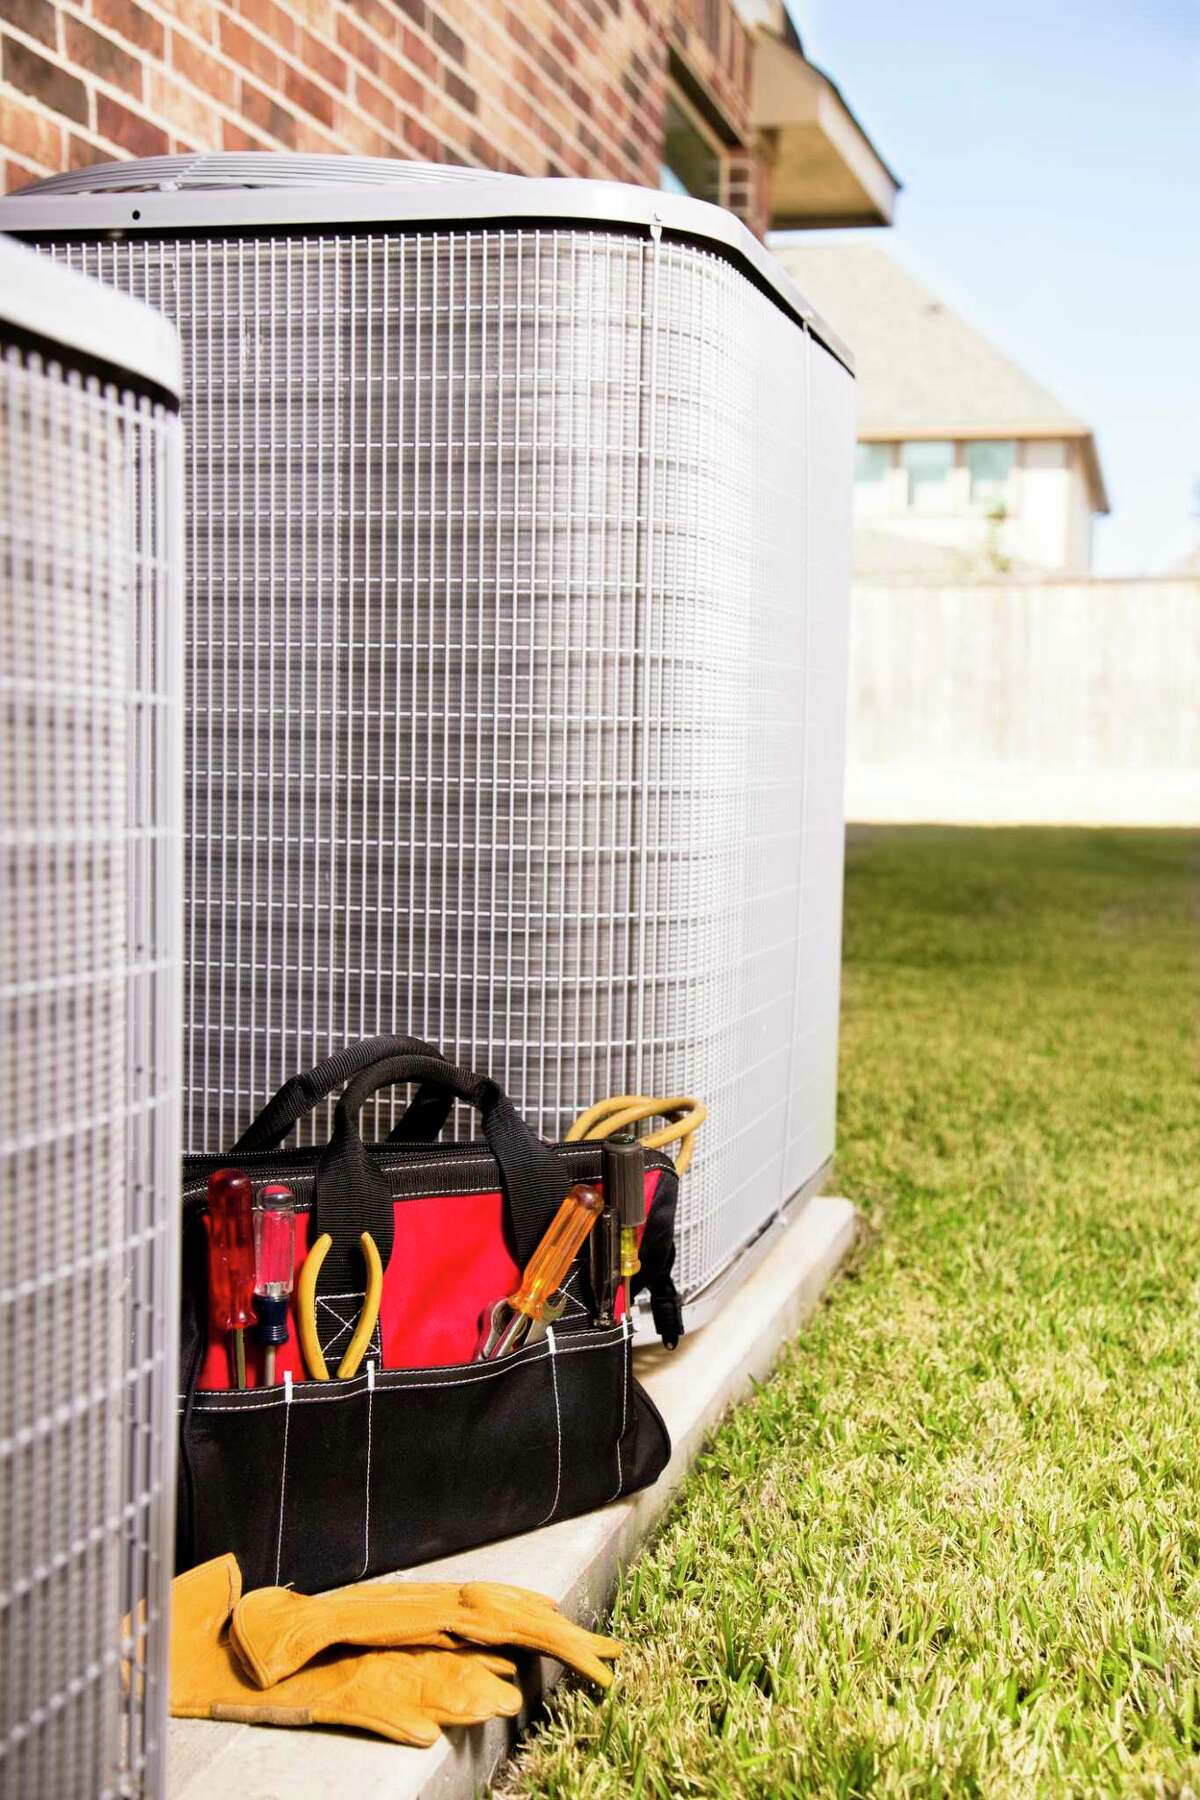 CenterPoint, through a partner, is offering home warranties on household systems such as air conditioning. But are they worth it?